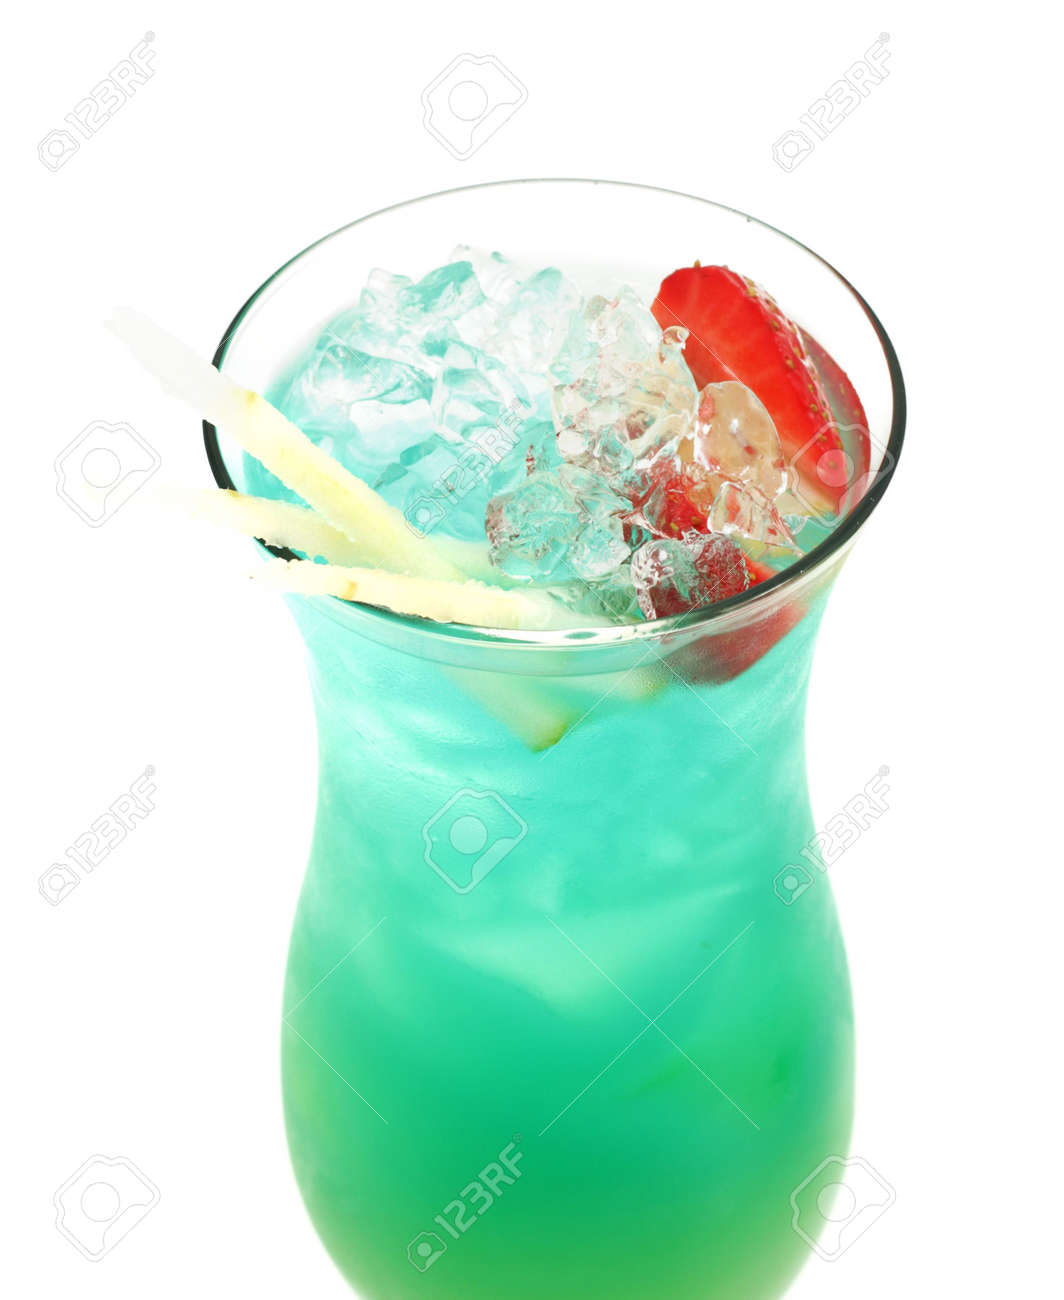 Image Free Rum Made 3206132 Tropical Blue Royalty Acoholic Picture Juice Image Drink Of Stock Photo Curacao And Pineapple